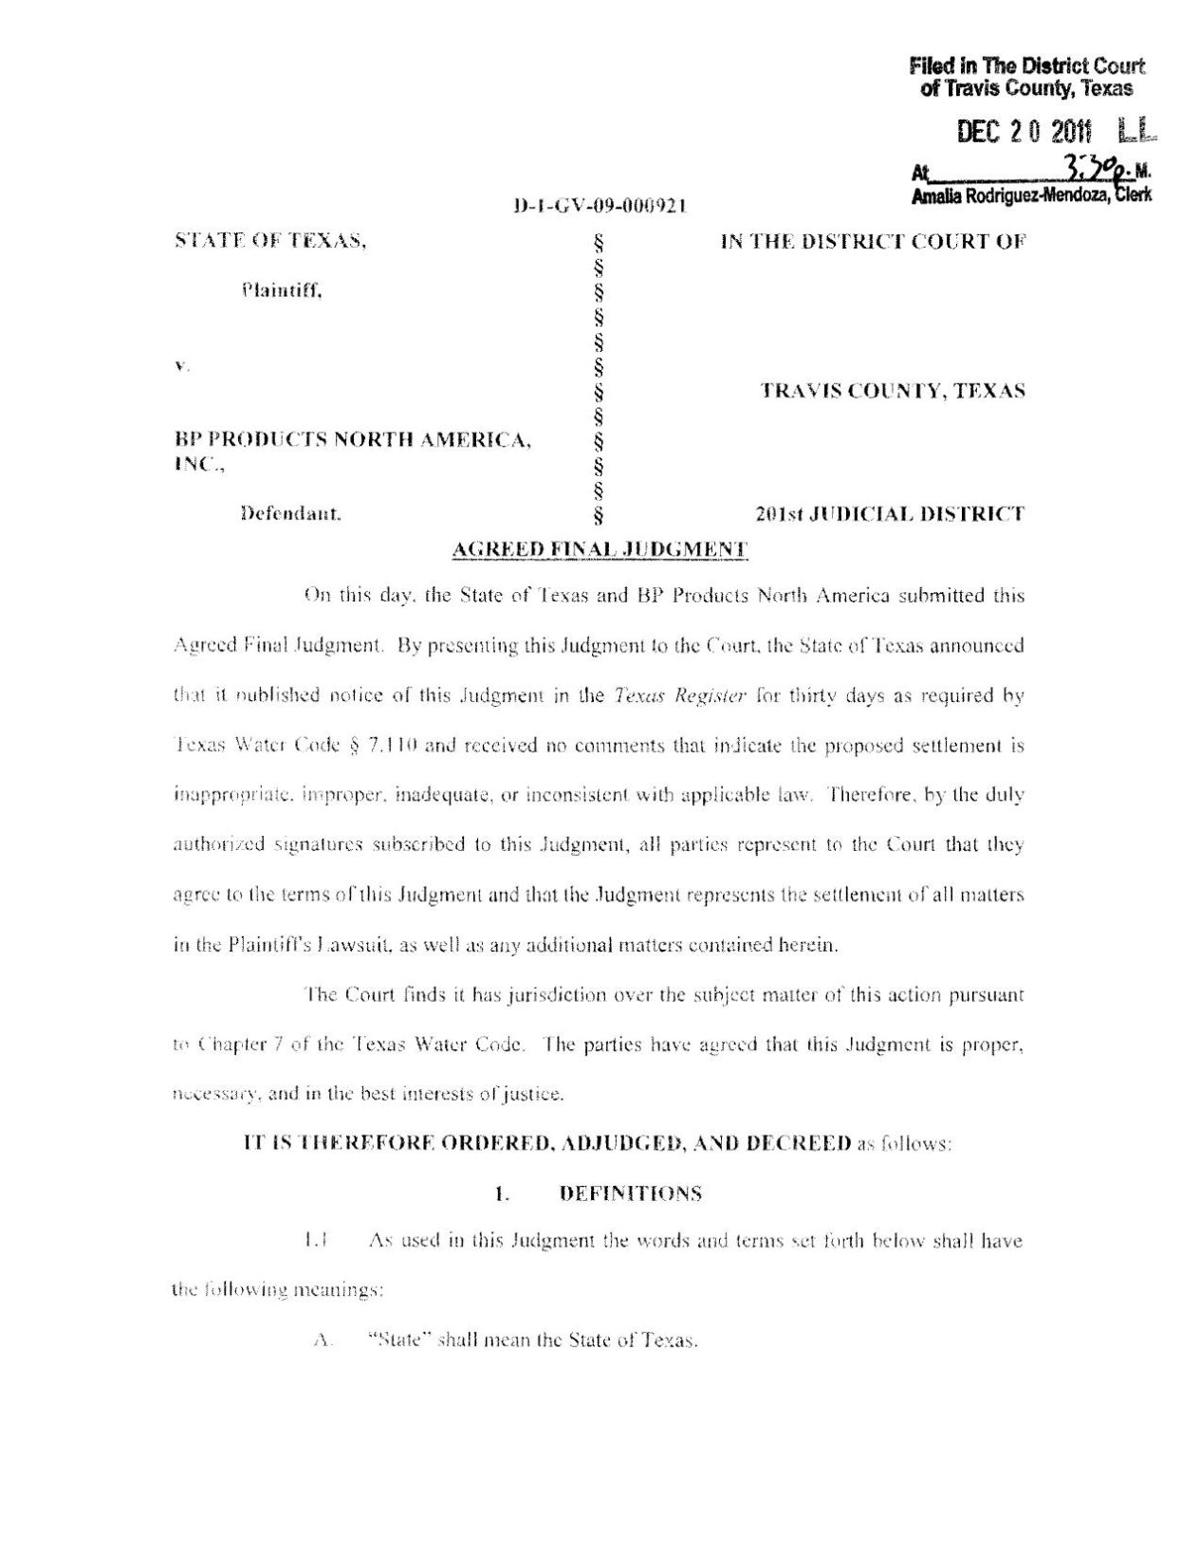 BP Agreed Final Judgment